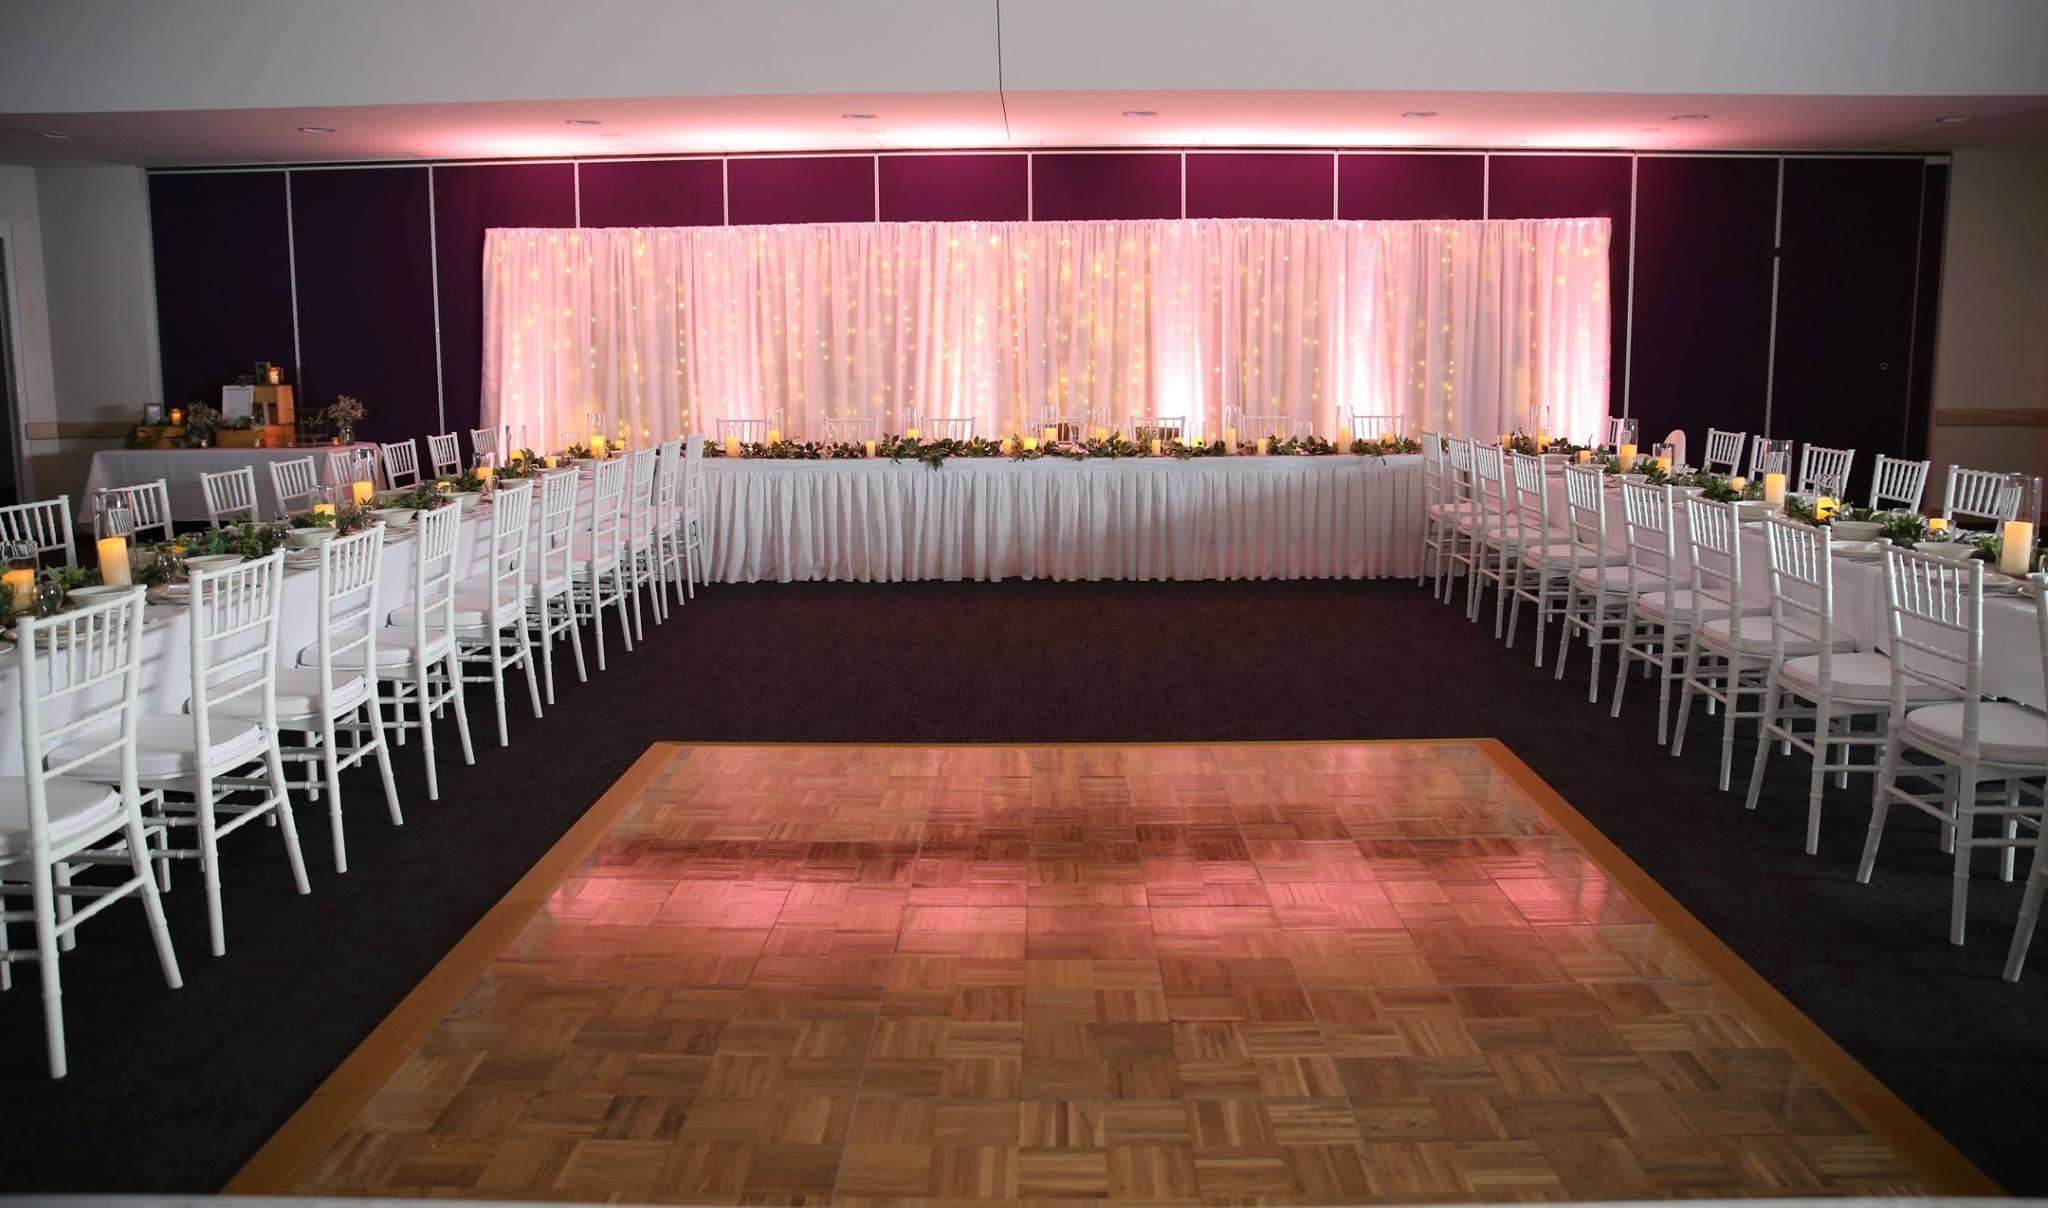 DECORATING DONE BY WEDDINGS & EVENTS